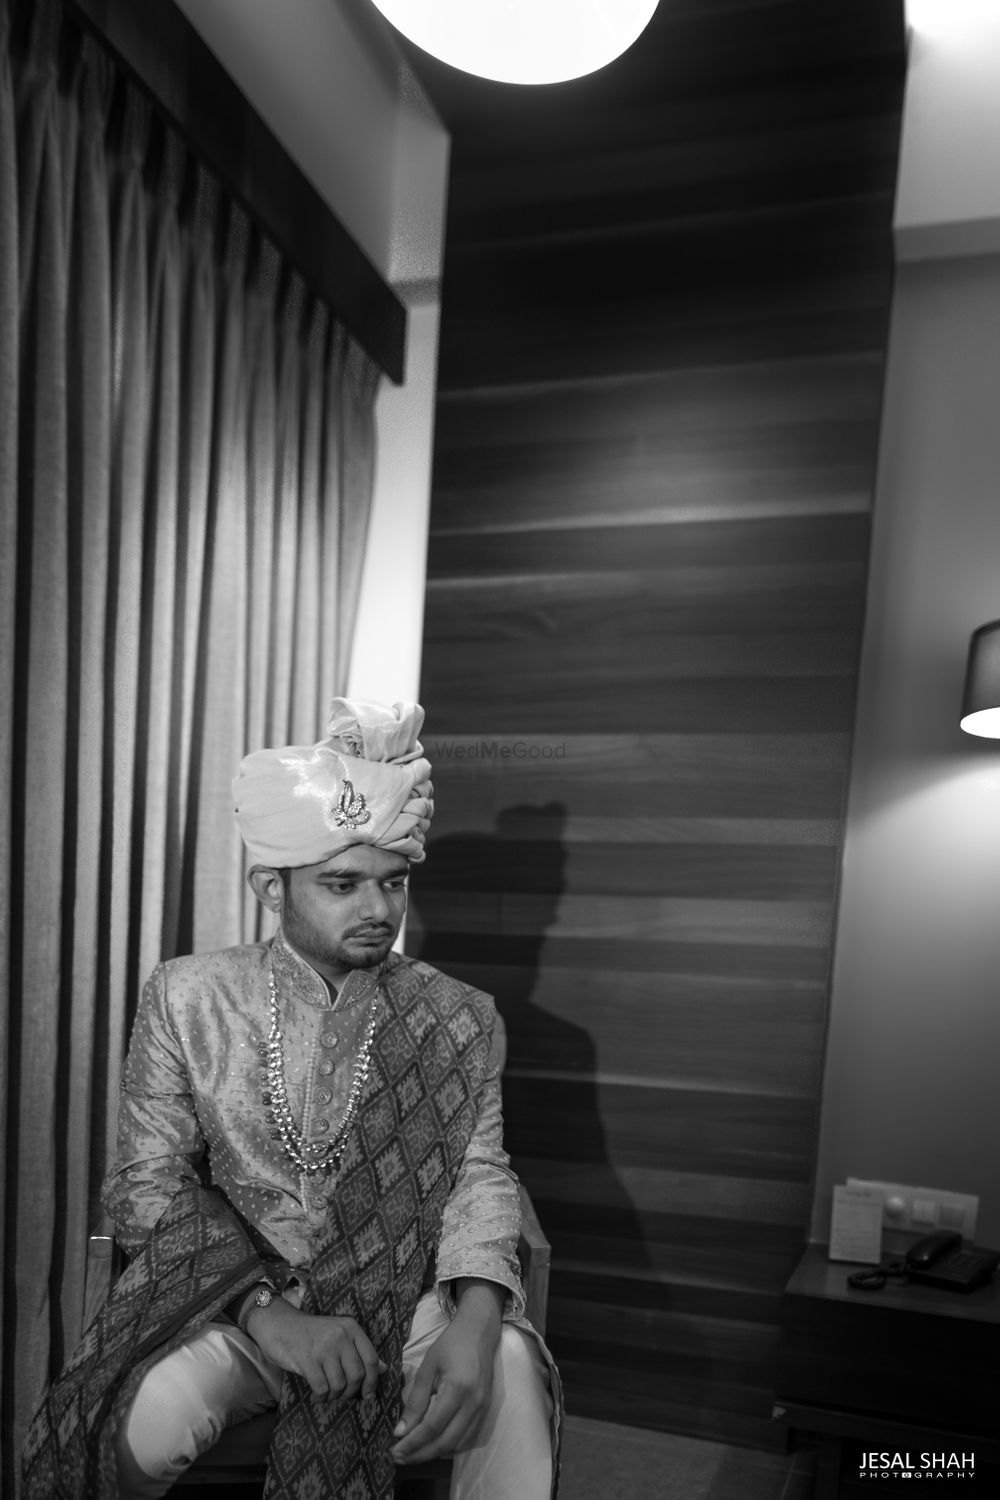 Photo From Dhaval & honey - By Jesal Shah Photography